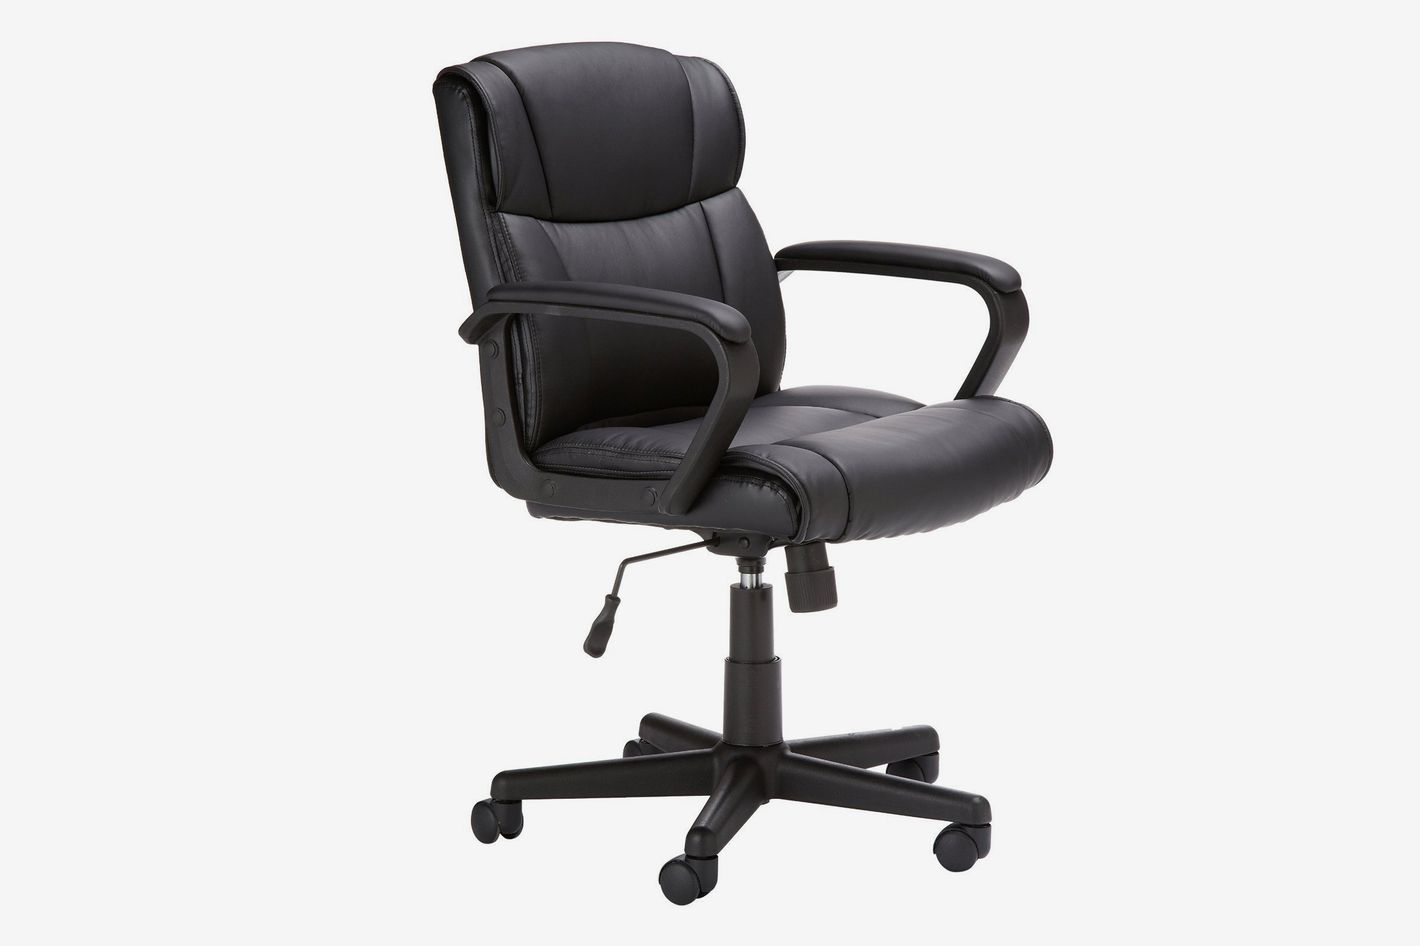 amazonbasics best office chair under $100